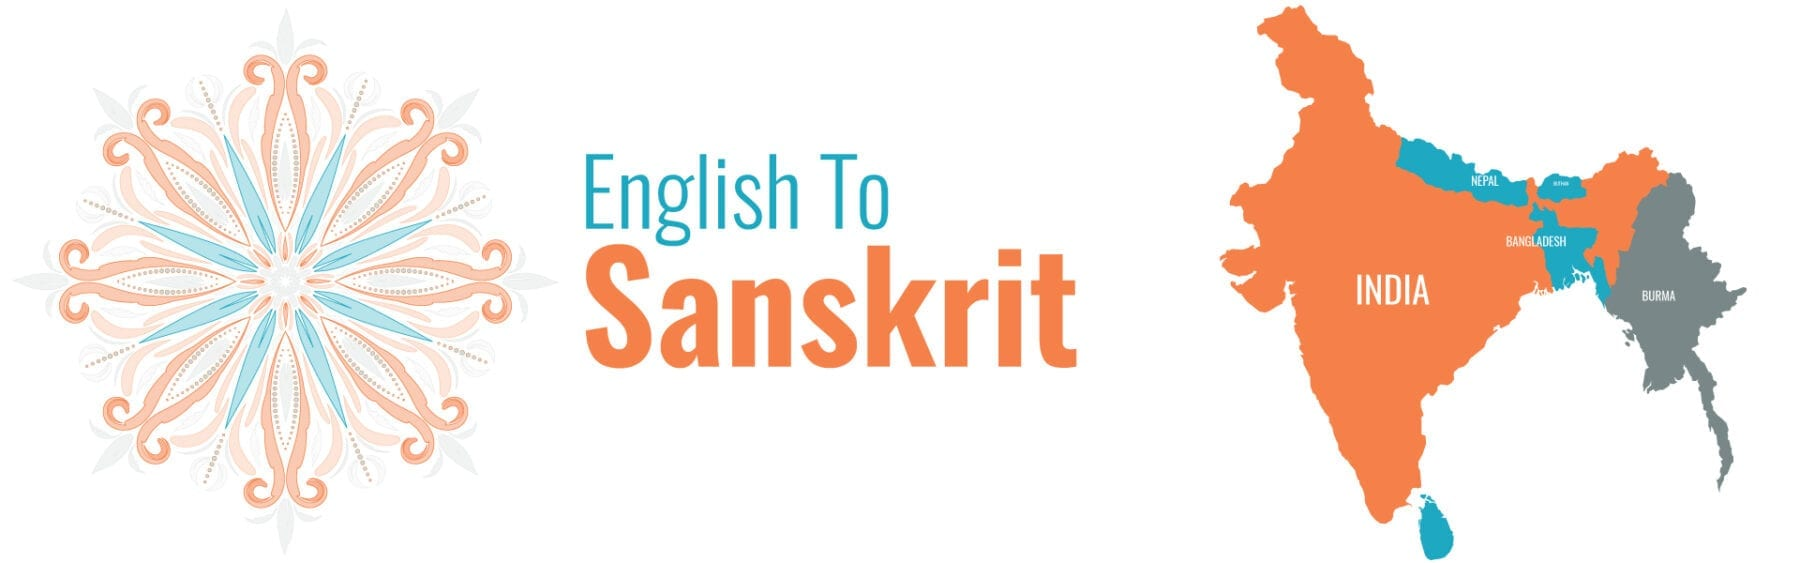 Sanskrit-Language-scaled